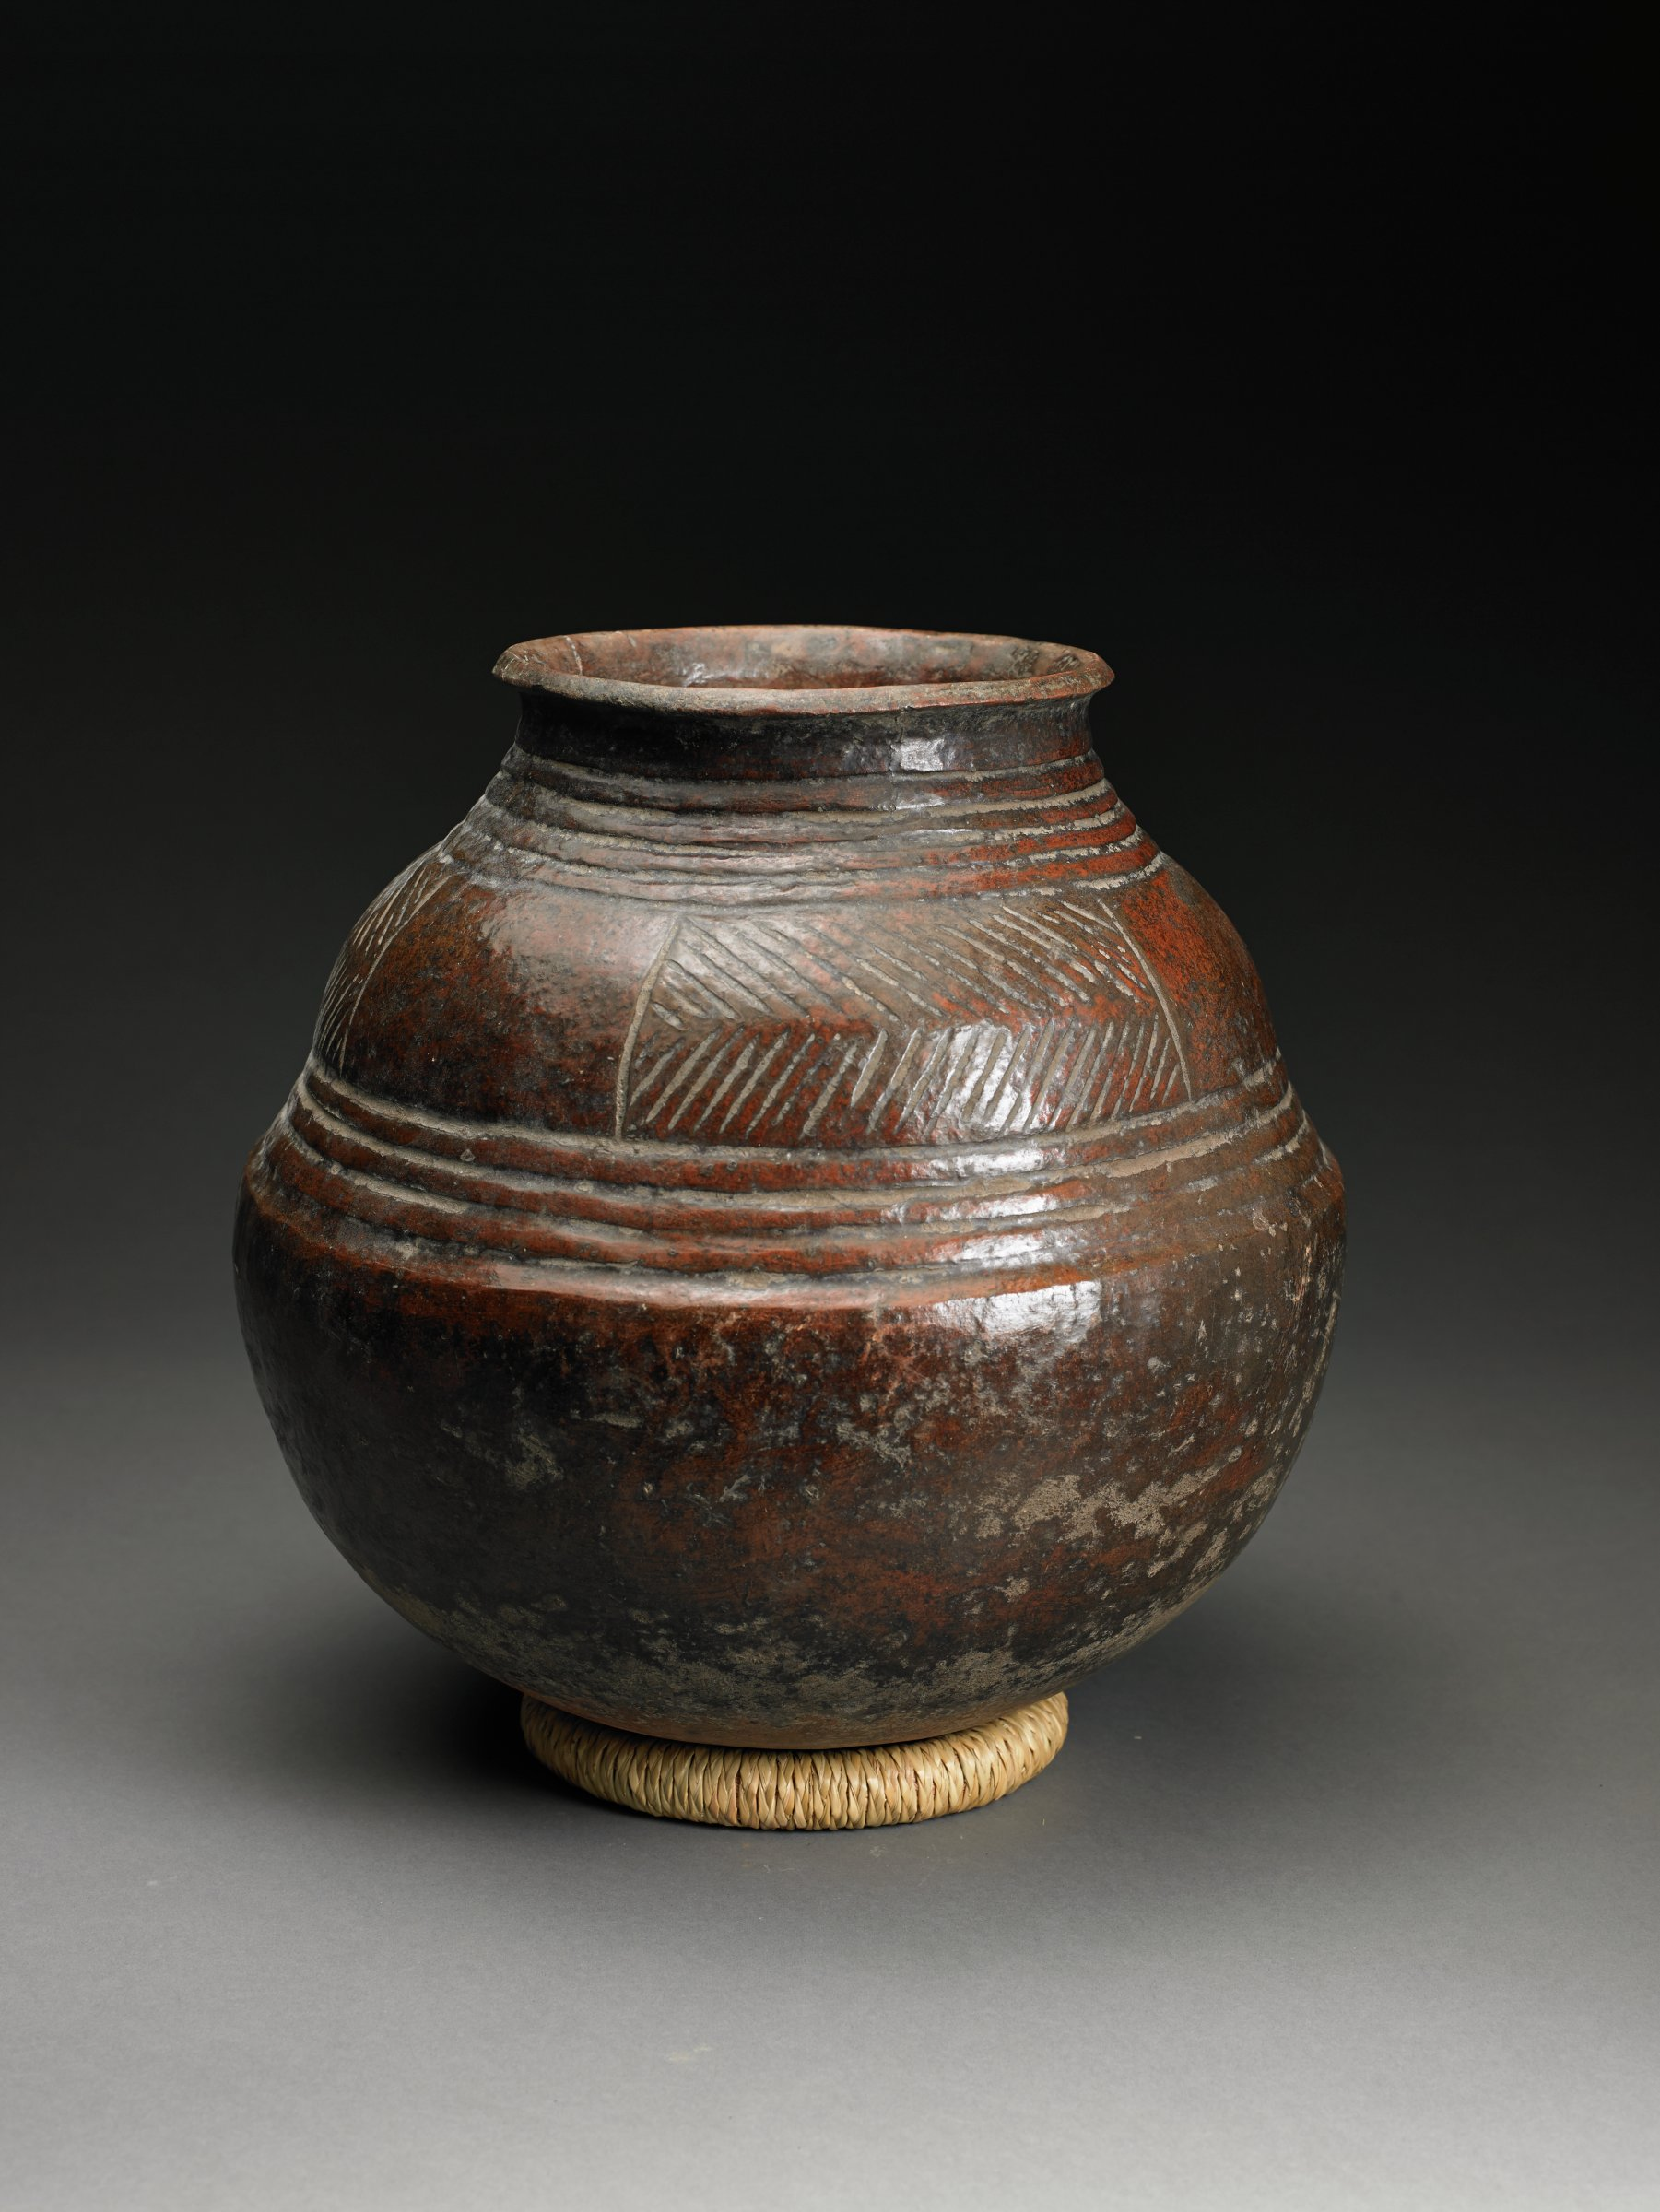 Dark brown glossy vessel has rounded bottom which is larger than top half of vessel; mid-point marked by raised bands.  Shoulder has herringbone pattern.